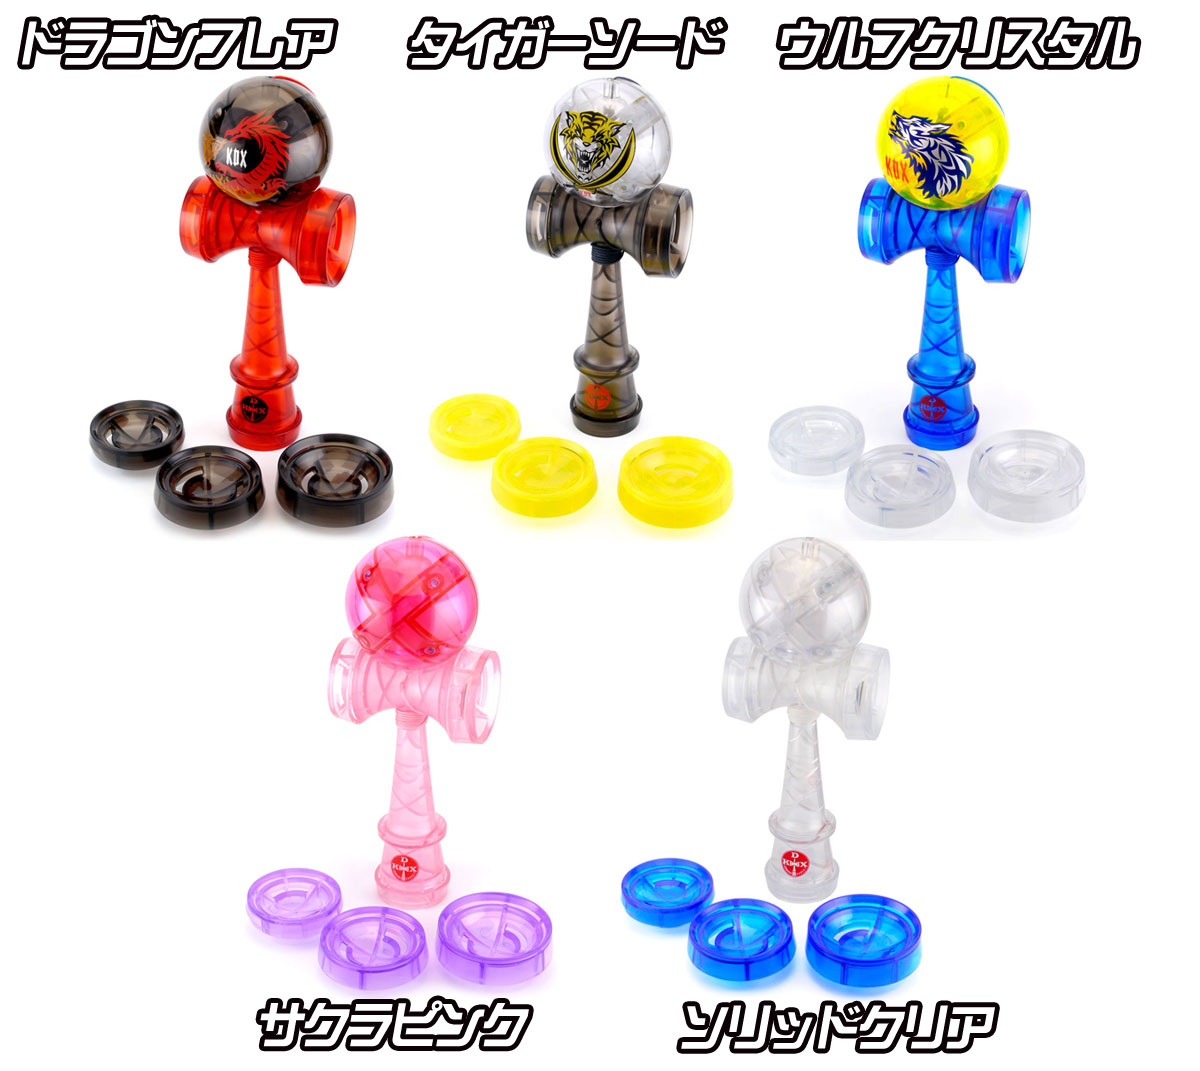 Kendama cross /KENDAMA XROSS (kendama / kenndama / kenn玉 / /Kendama Cup and ball)